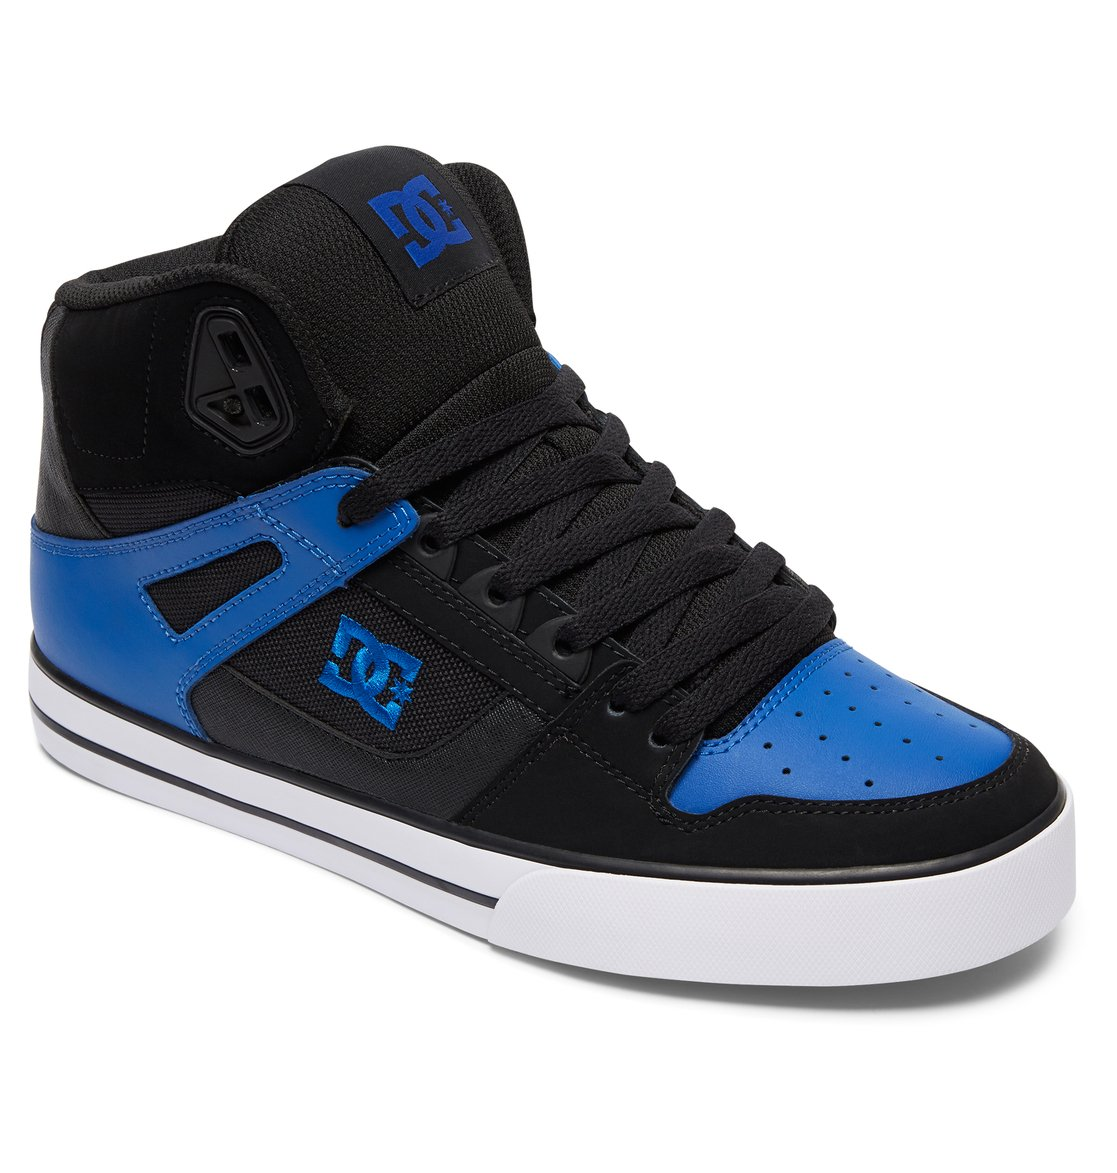 spartan high wc chaussures 302523 dc shoes. Black Bedroom Furniture Sets. Home Design Ideas